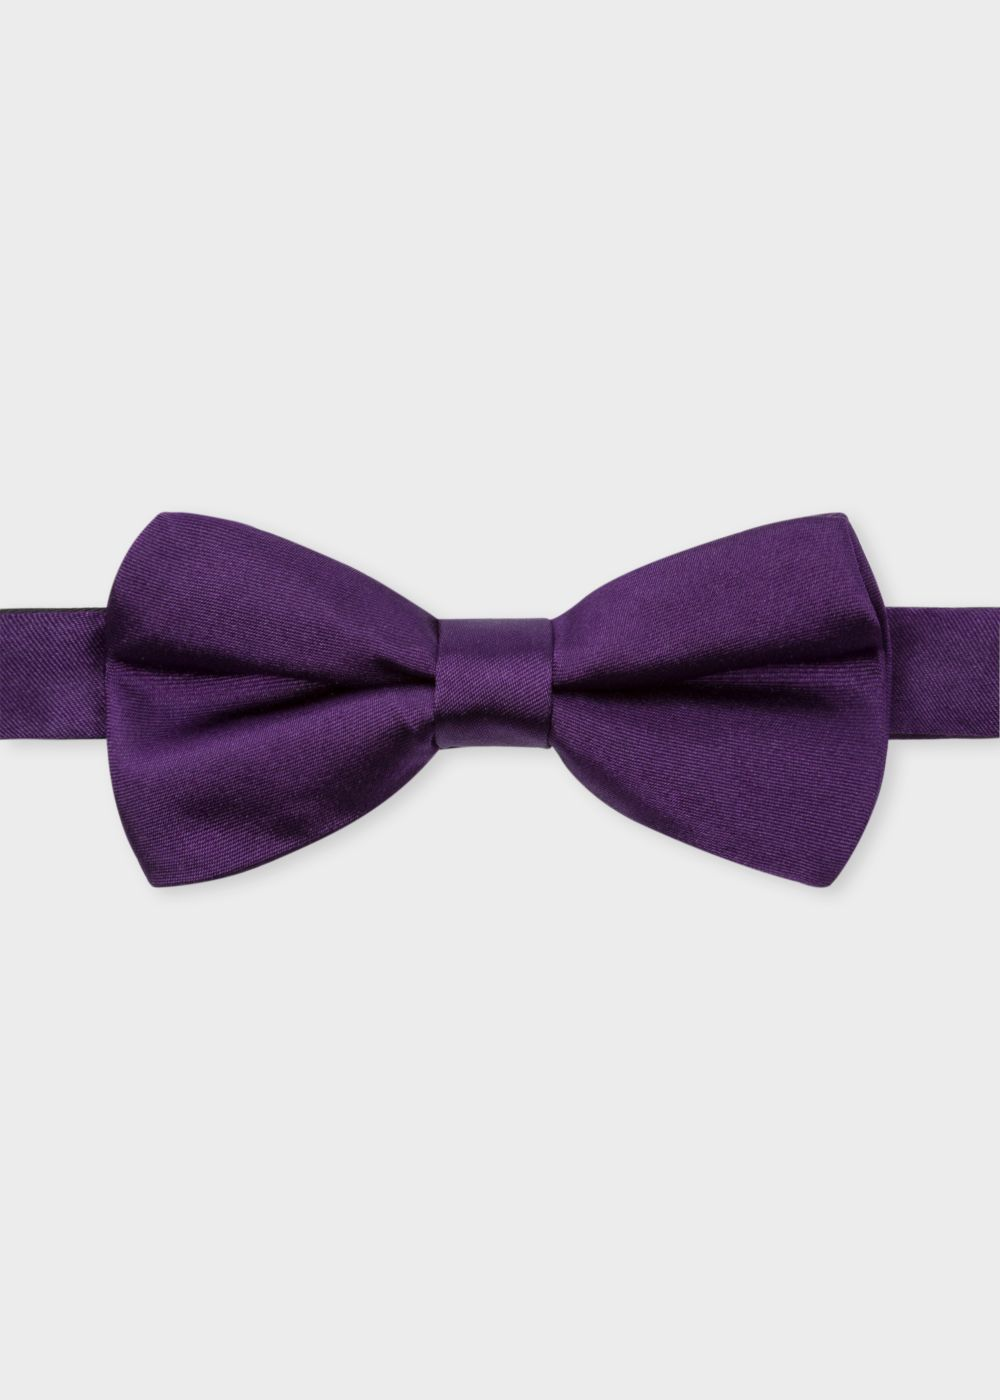 Paul Smith Purple Silk Bow Tie